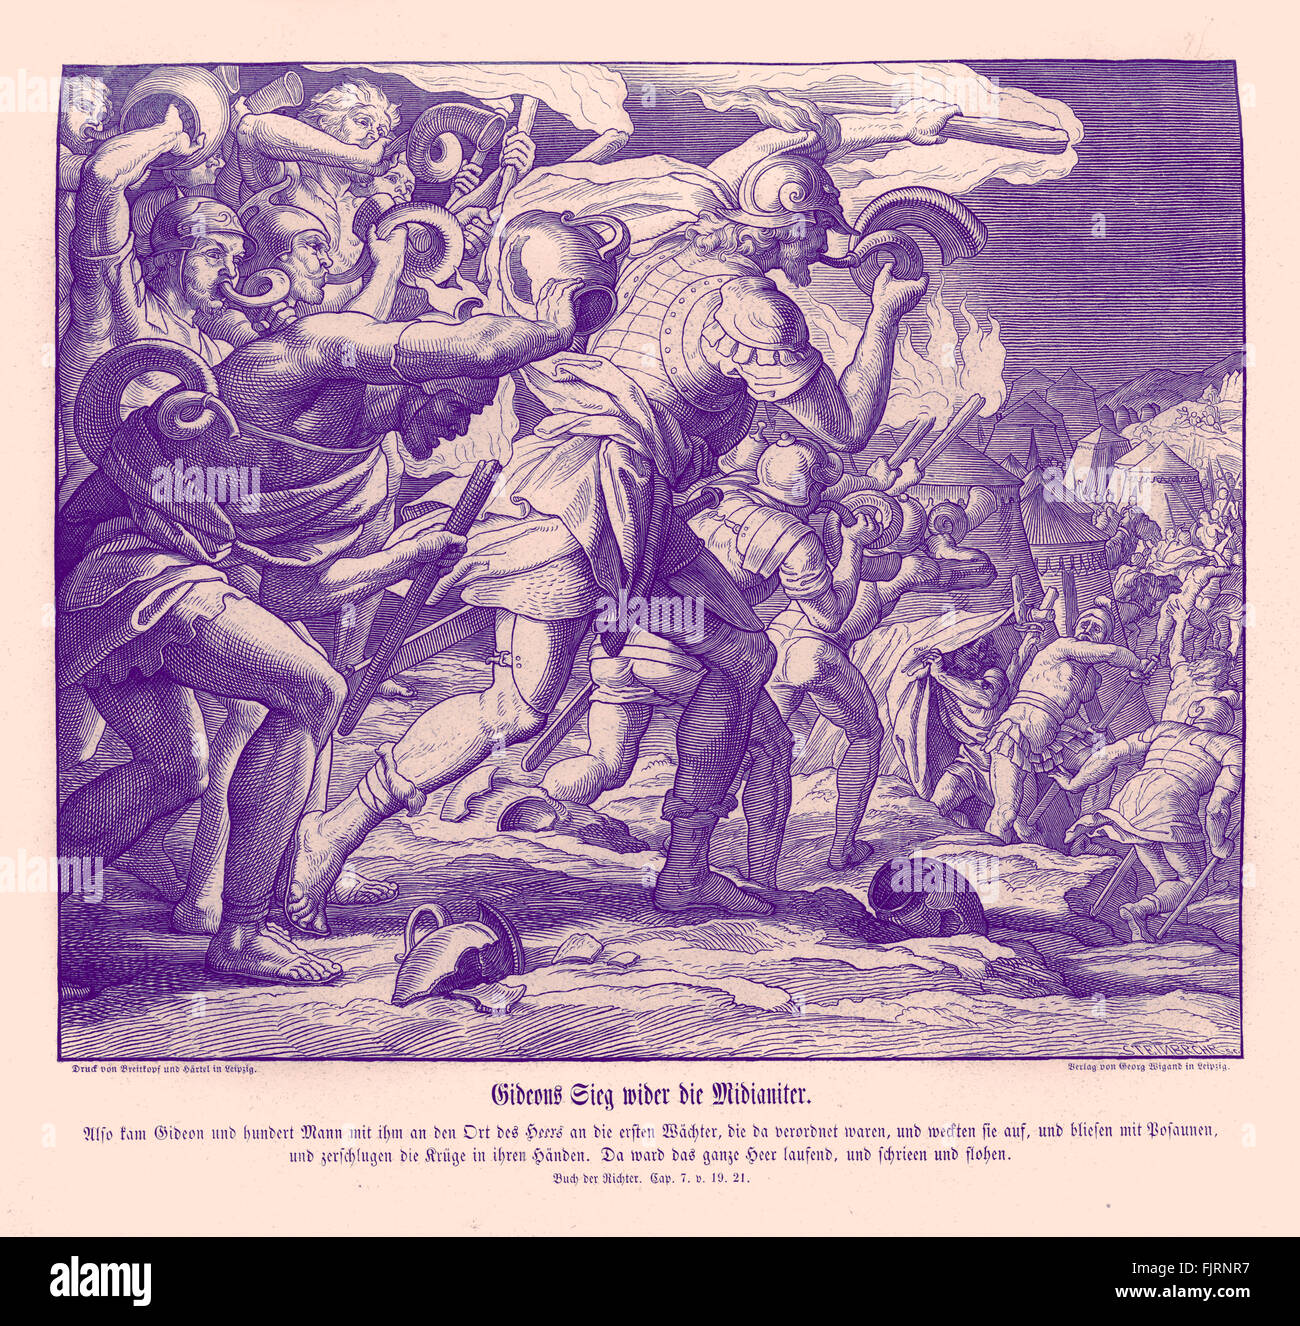 Gideon's victory against the Midianites, Judges chapter VII verses 19 - 21 'So Gideon, and the hundred men - Stock Image